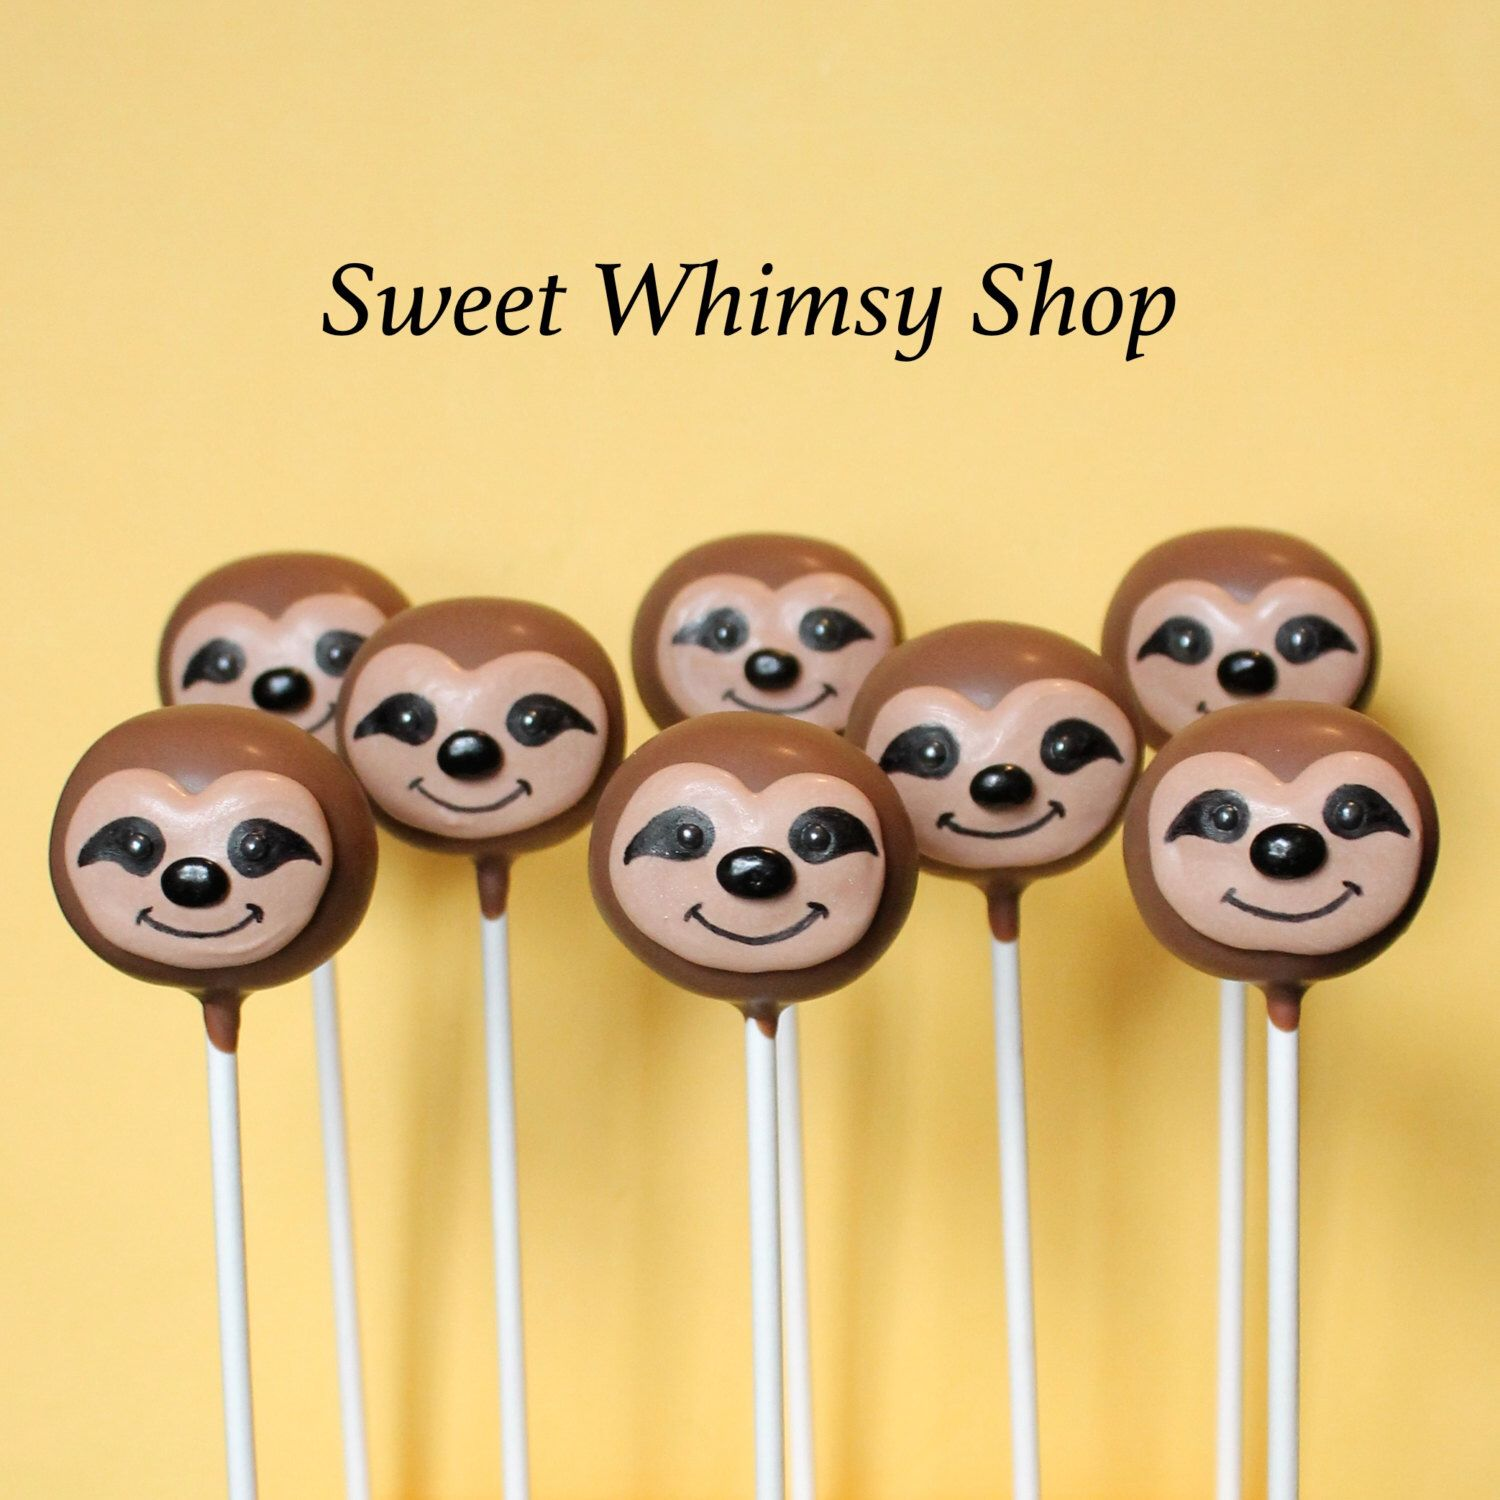 12 Cute Sloth Cake Pops For Zootopia Party Jungle Zoo